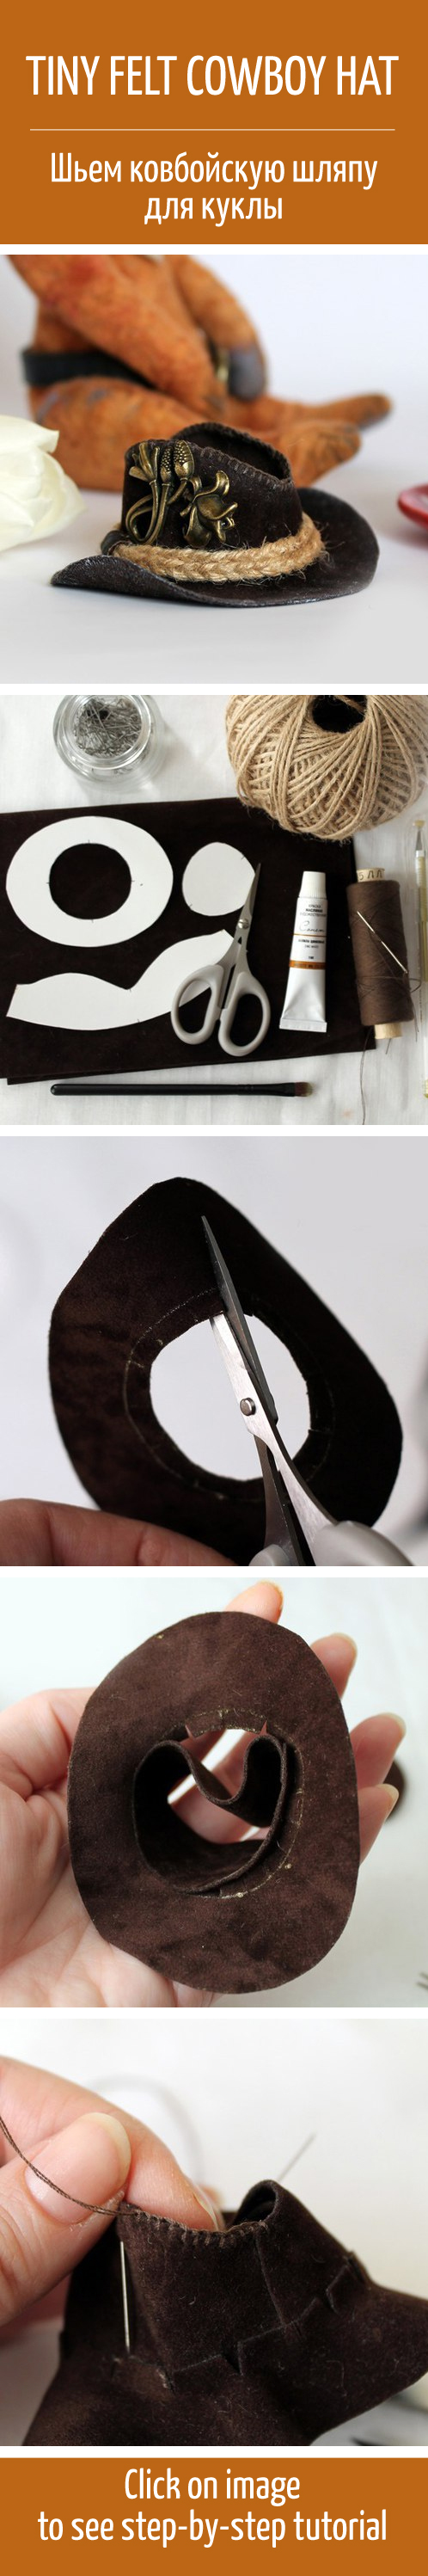 72ddb5ba1 How to make a cowboy hat for a toy / Шьем из фетра ковбойскую шляпу ...